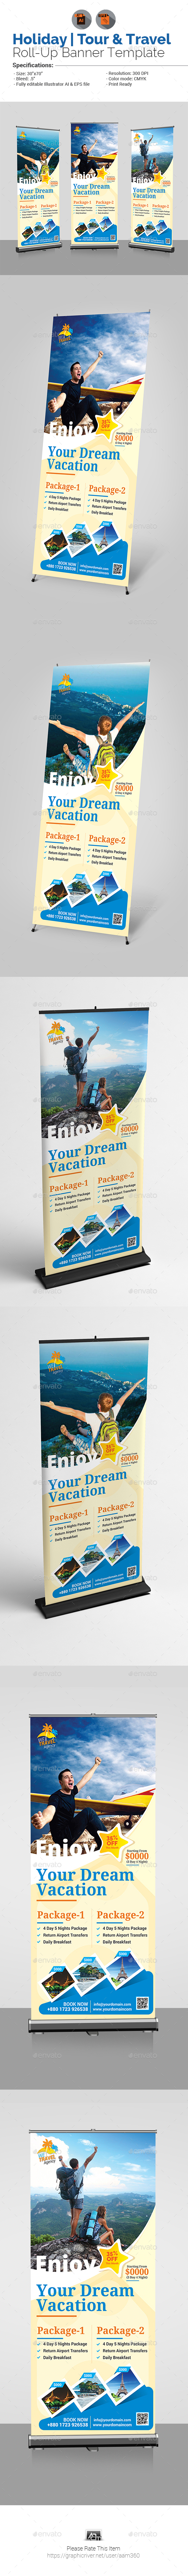 Holiday Tour & Travel Roll-Up Banner Template - Signage Print Templates